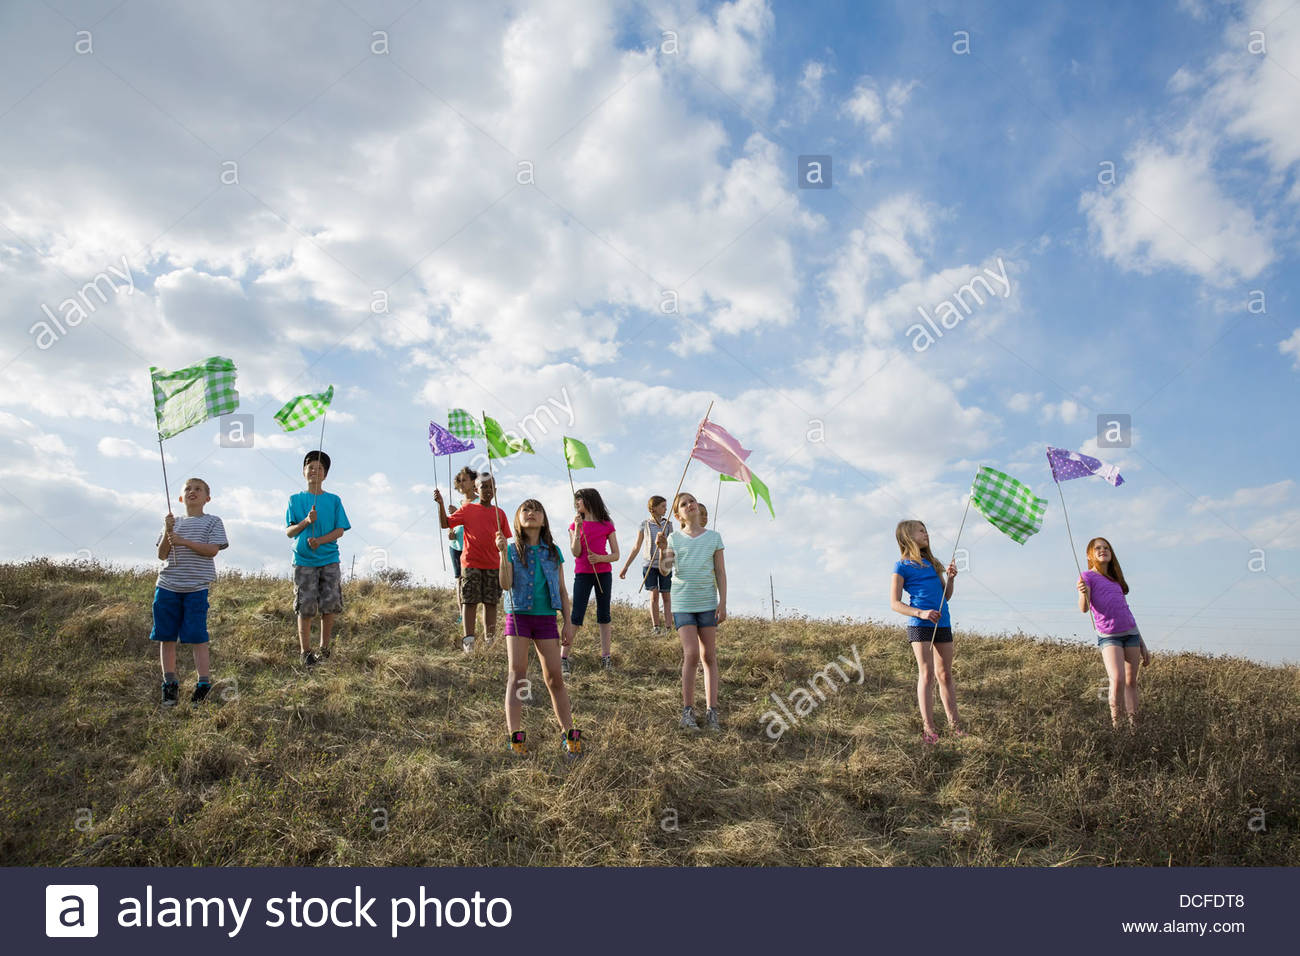 Schoolchildren holding flags on a hill - Stock Image